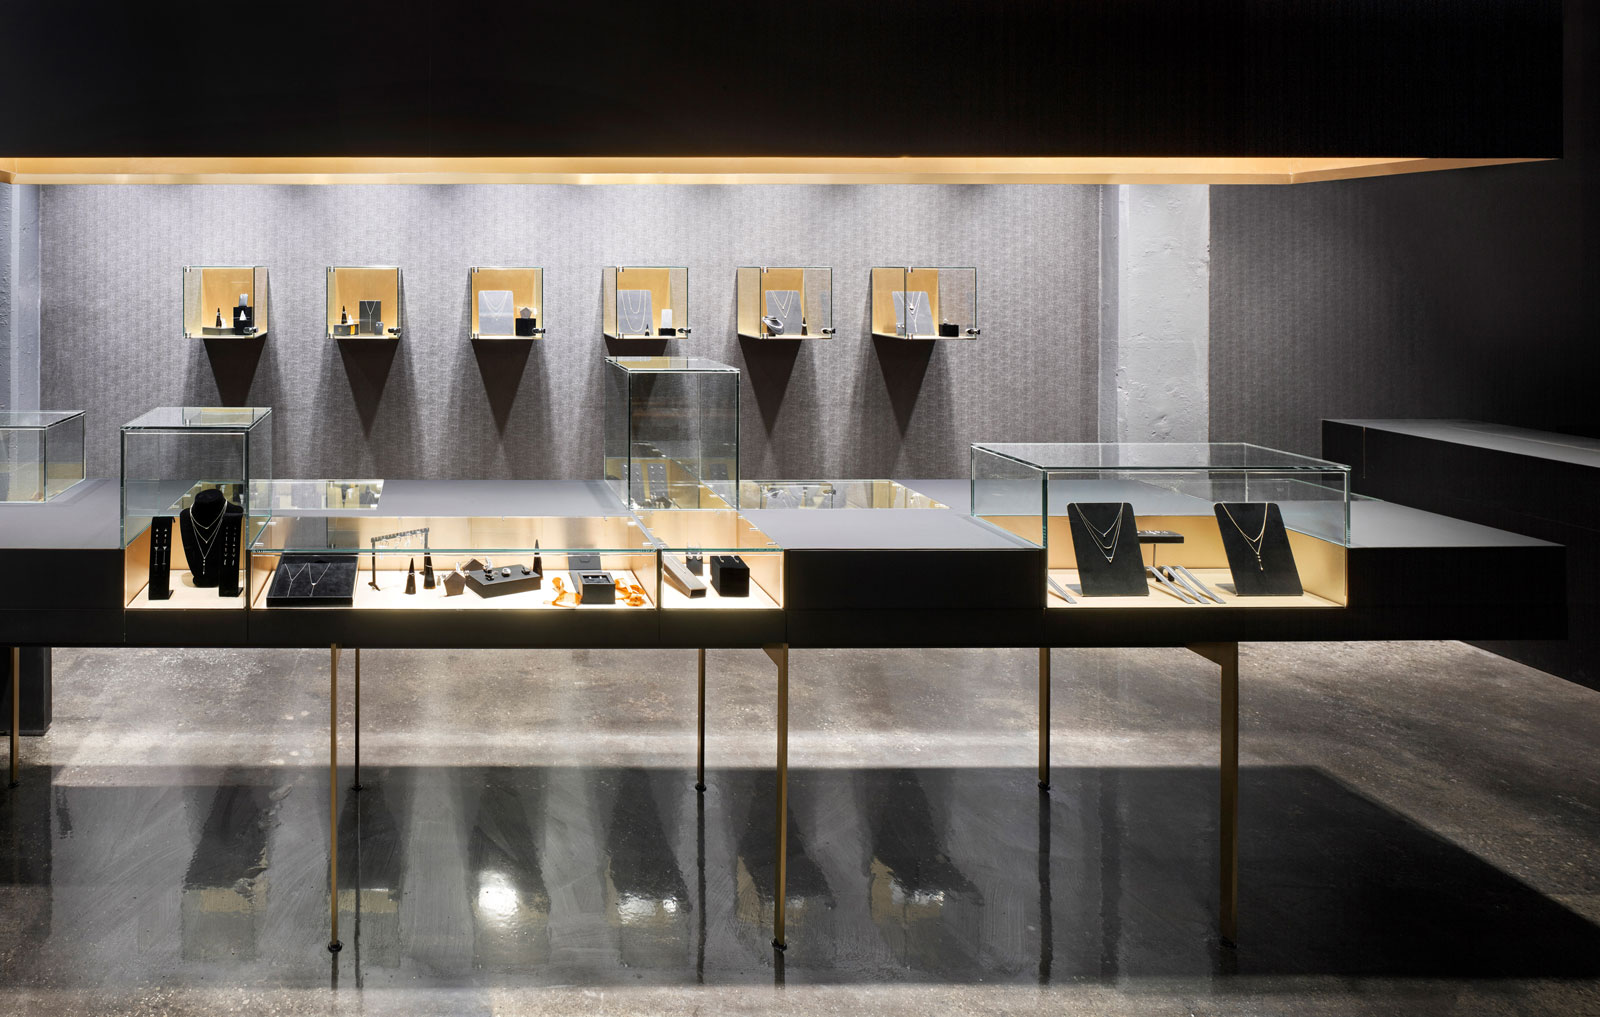 Contrast and luxury are on display in this understated jewellery boutique